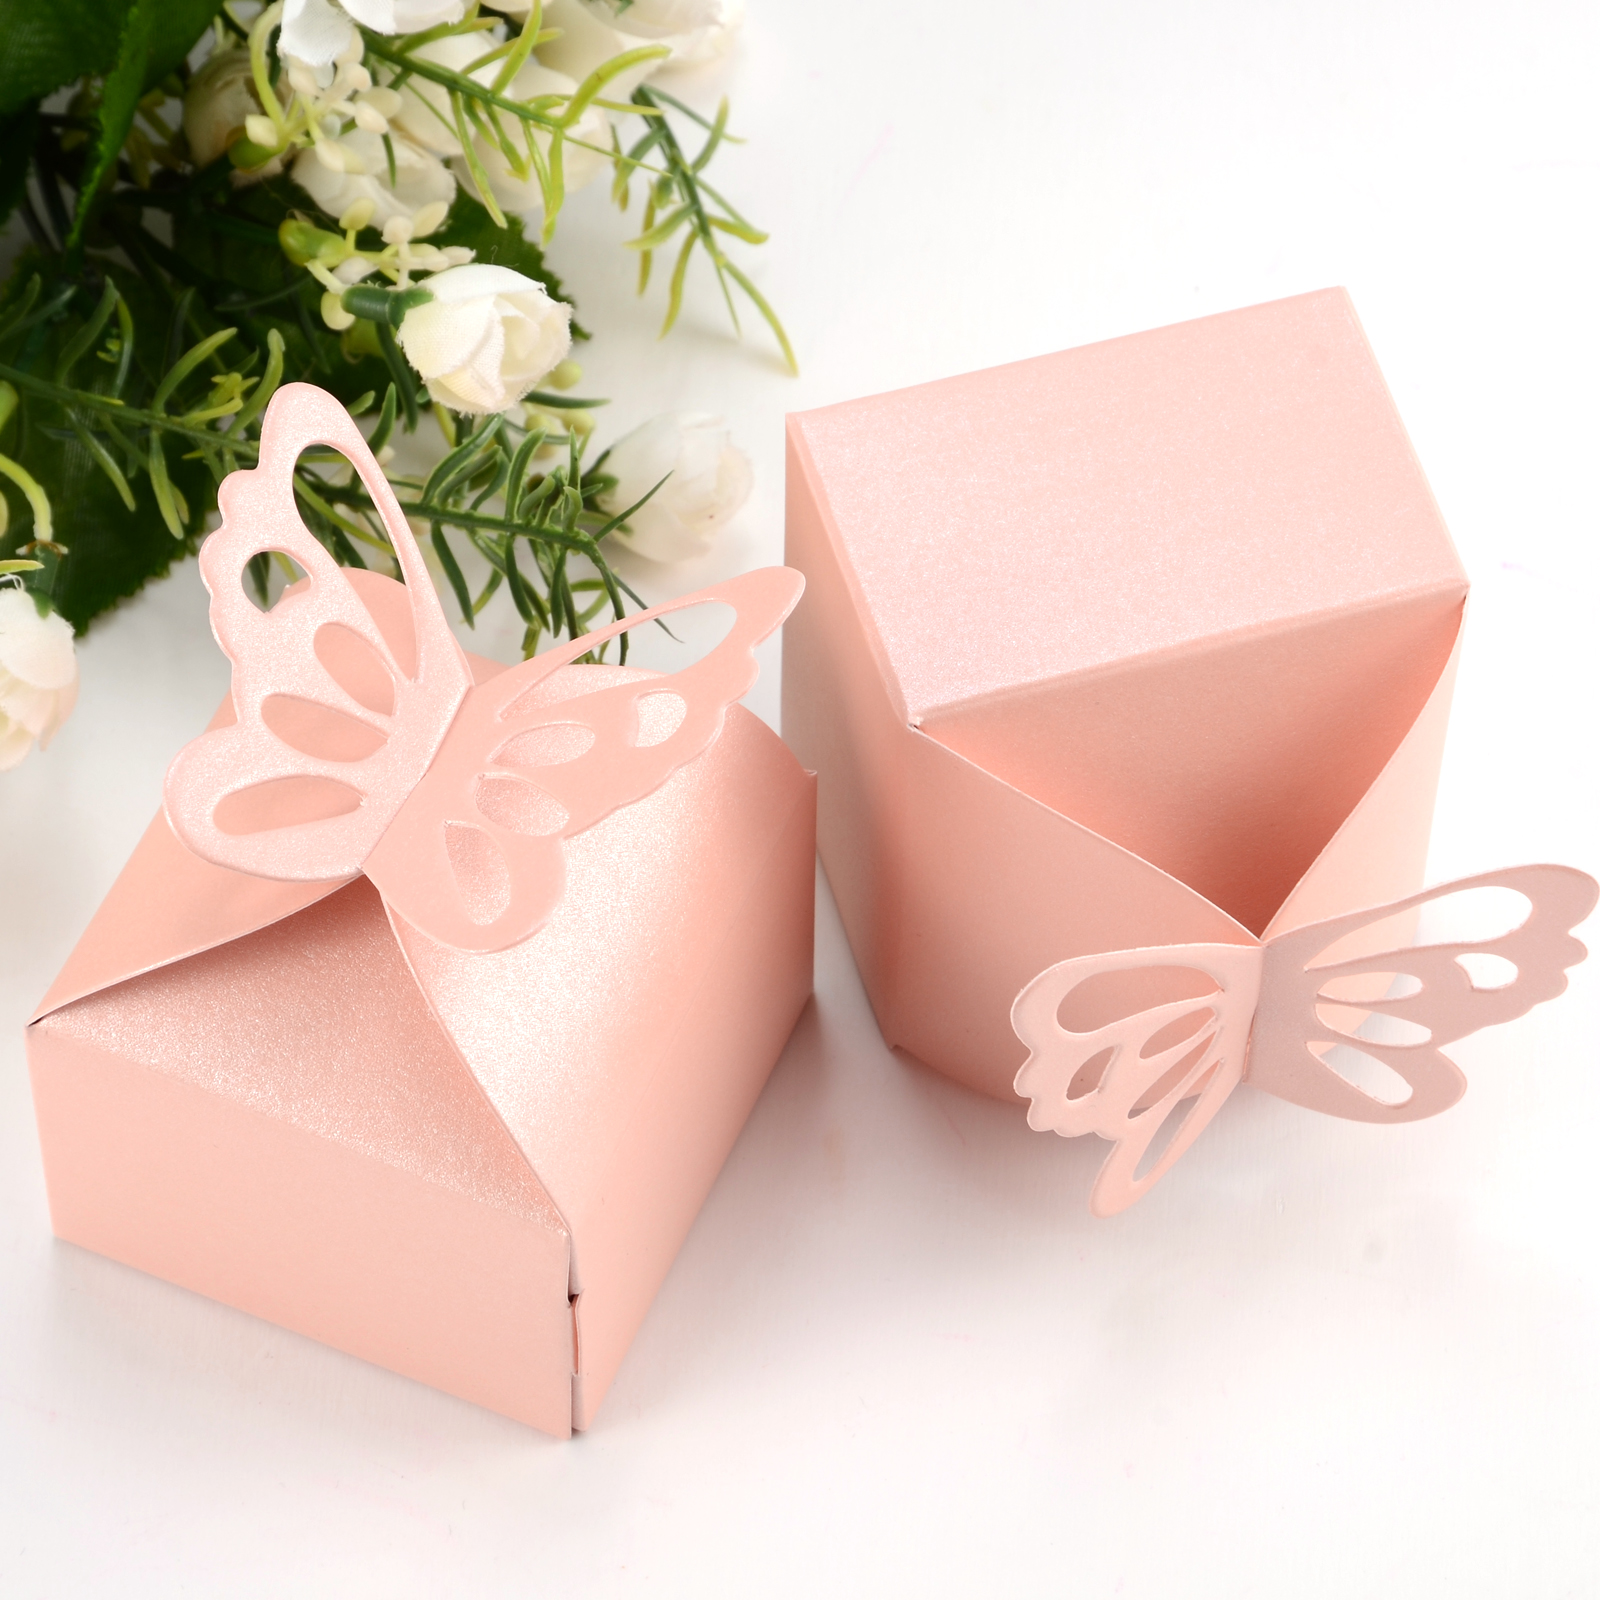 50pcs Butterfly Top Gift Candy Bomboniere Boxes Wedding